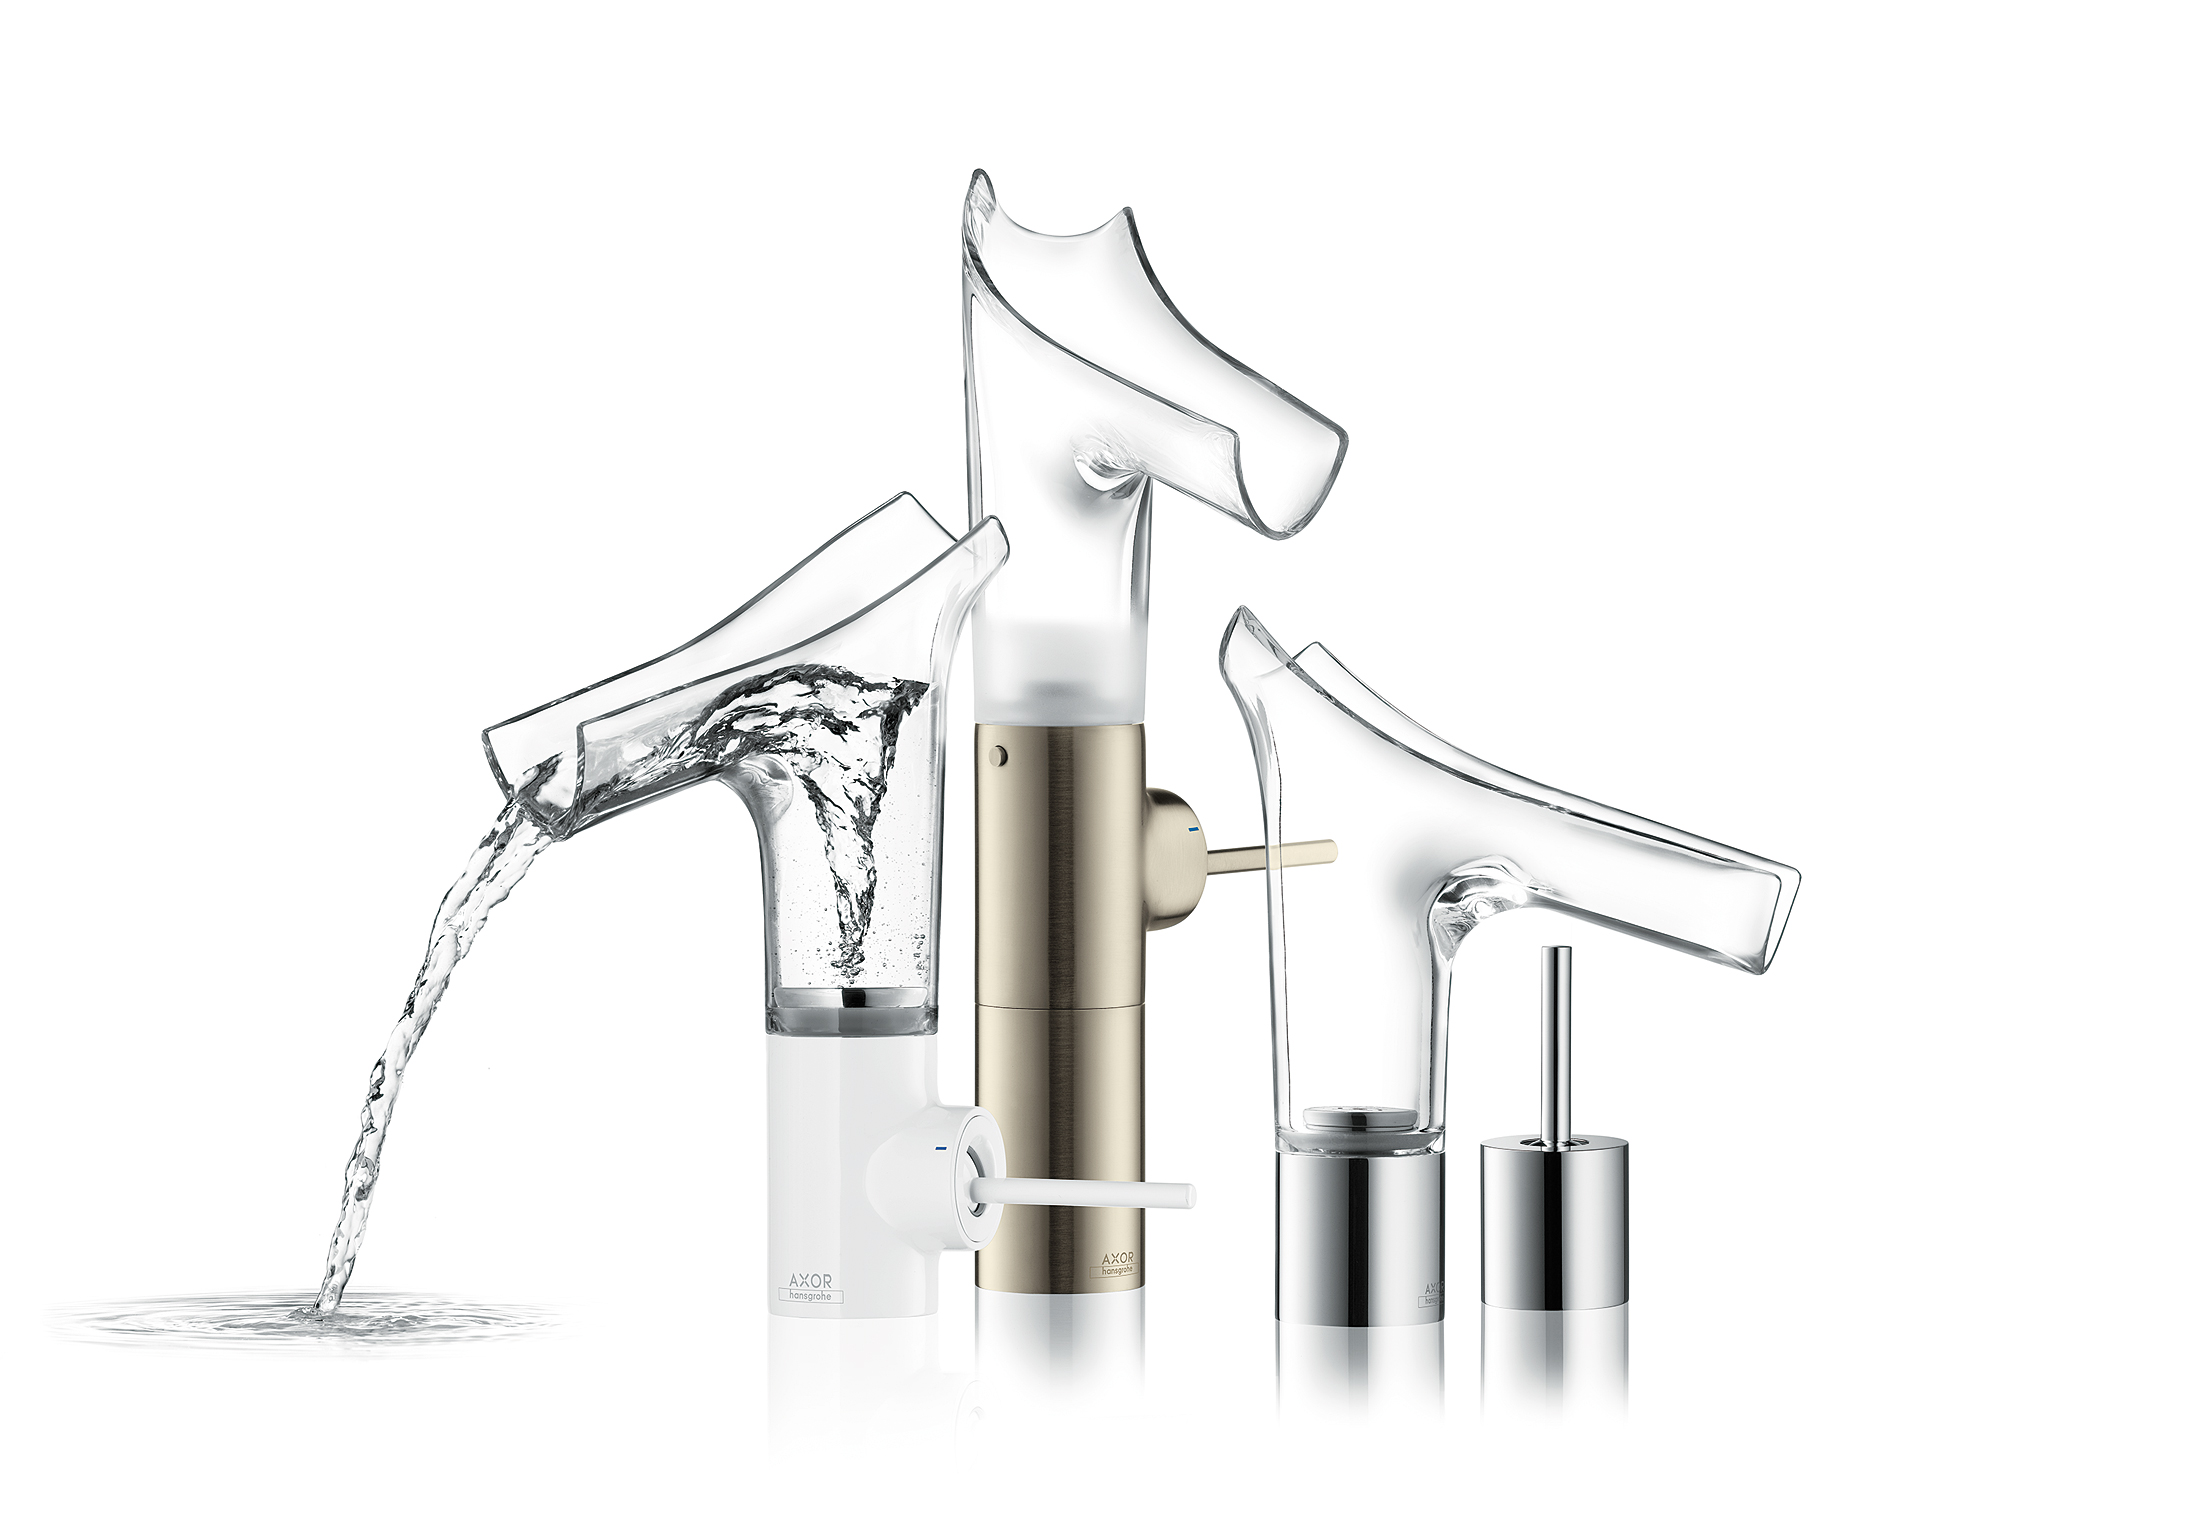 Axor Starck V Washbasin Mixer Experience The Vitality Of Water Axor Starck V Collection